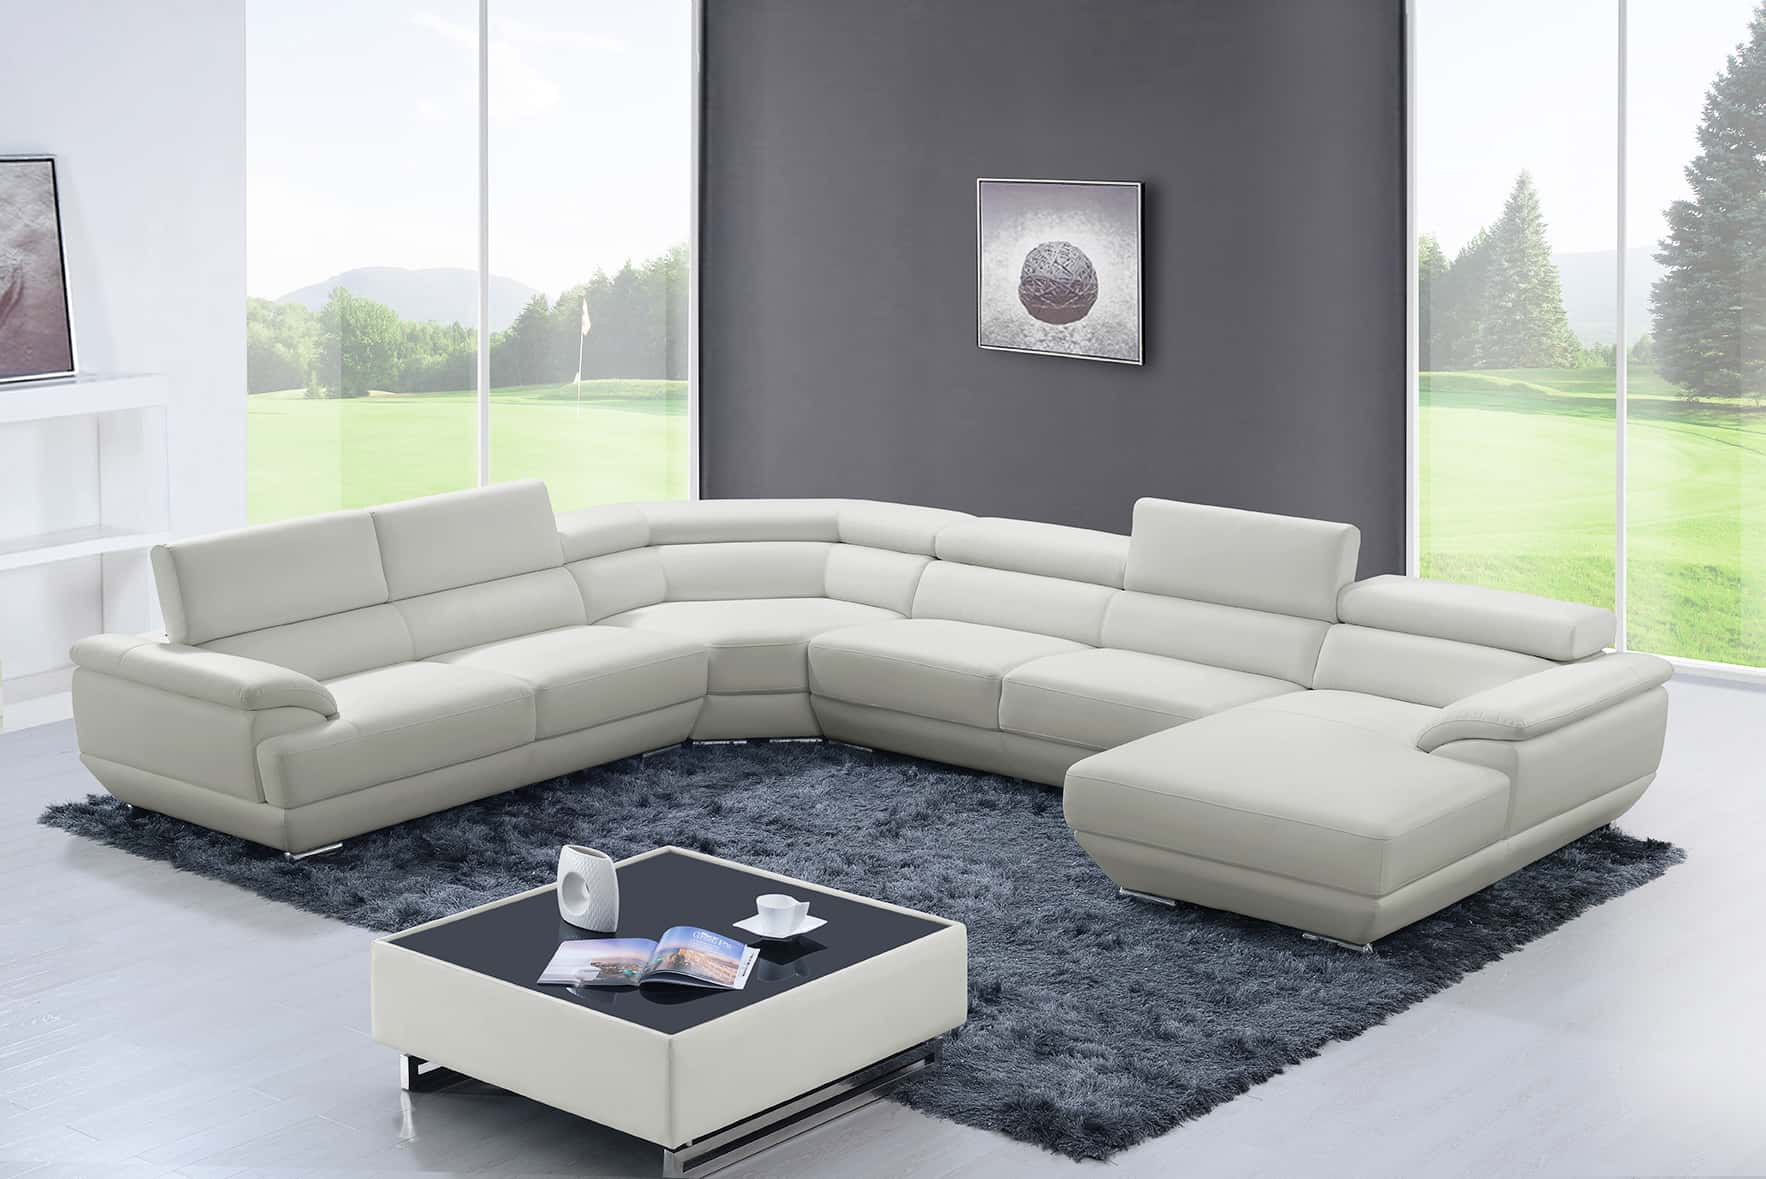 430 Off White Leather Sectional By Esf